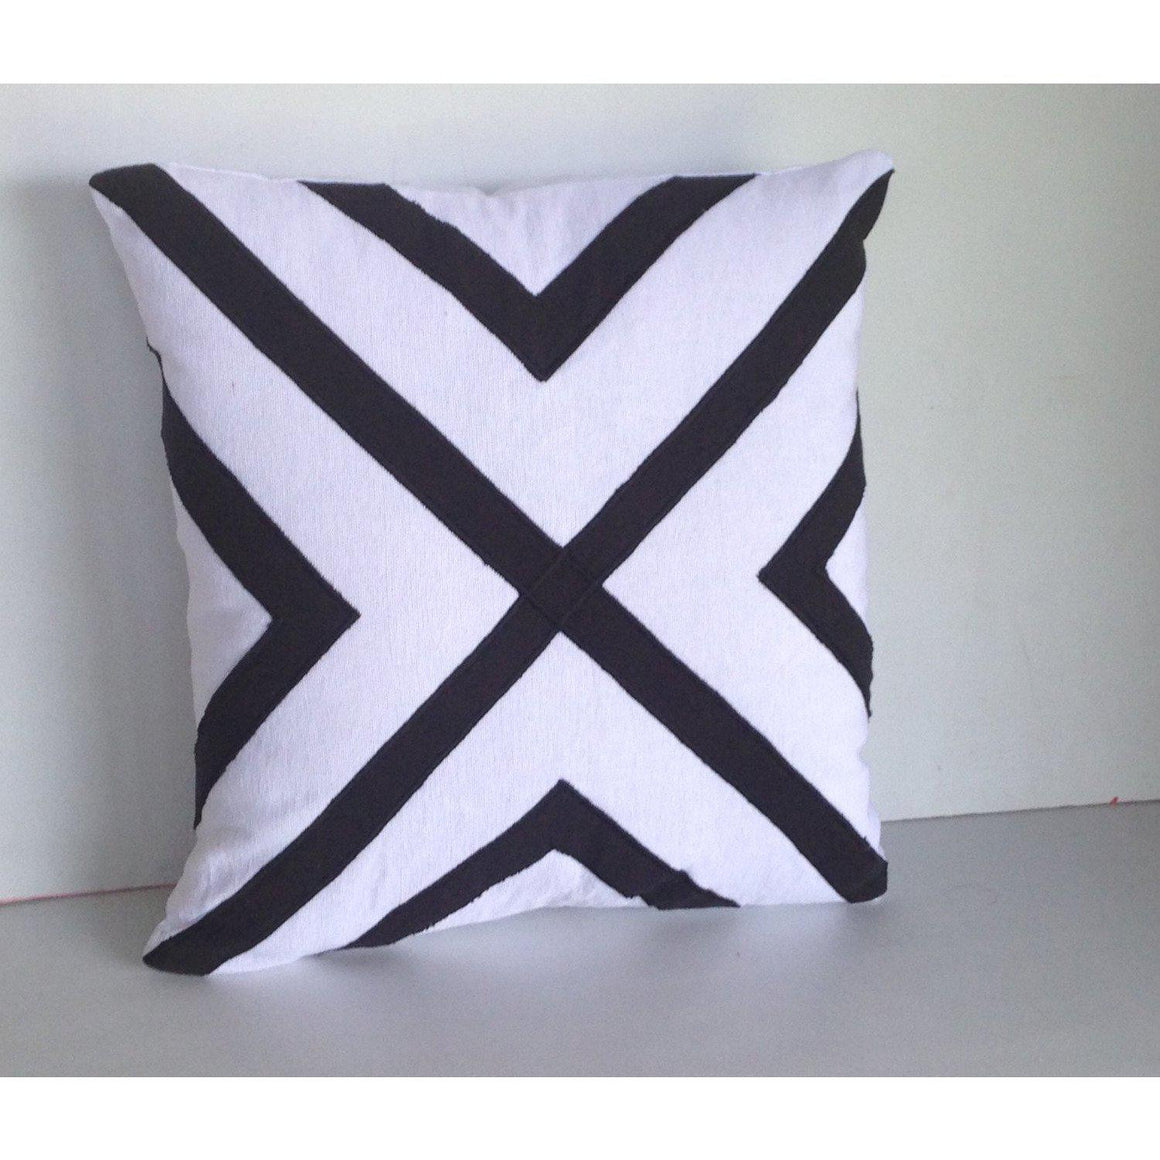 FREE SHIPPING White Unique Pillows, White Embroidered Pillows, House Warming Gift, Home Decor, Sofa pillow covers, Gift pillow cover - Snazzy Living